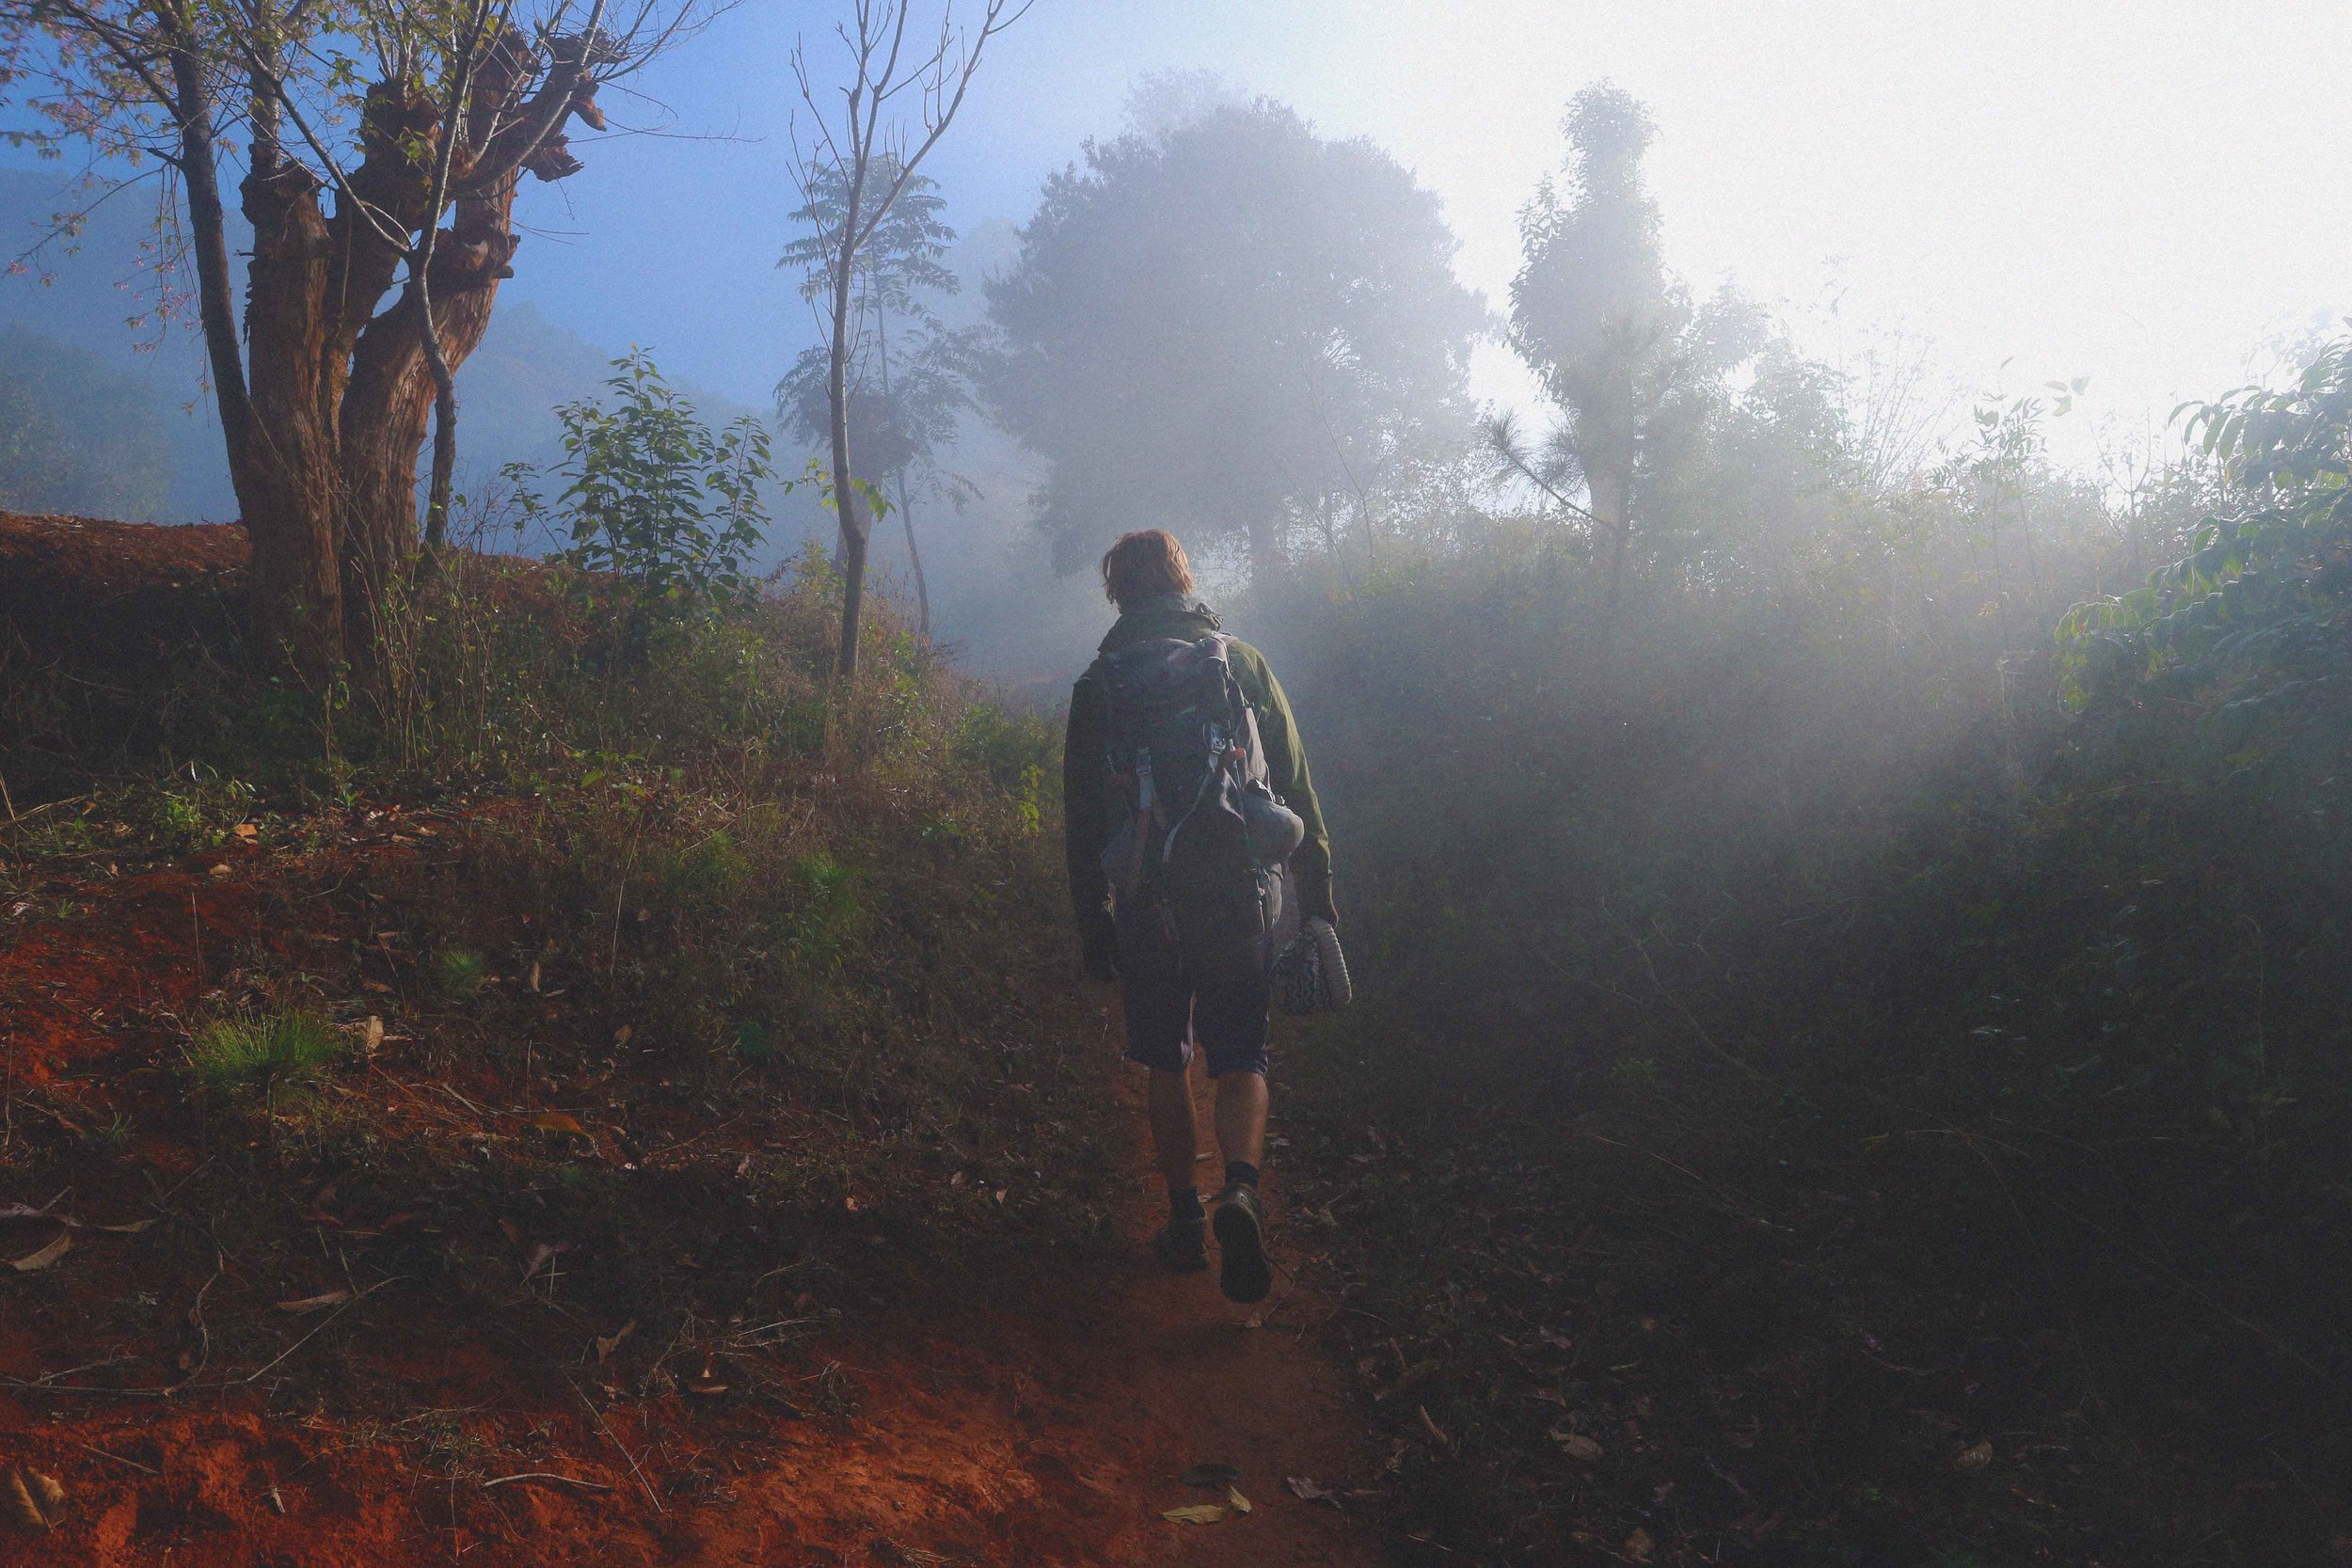 On the 3 day trek from Kalaw to Inle Lake